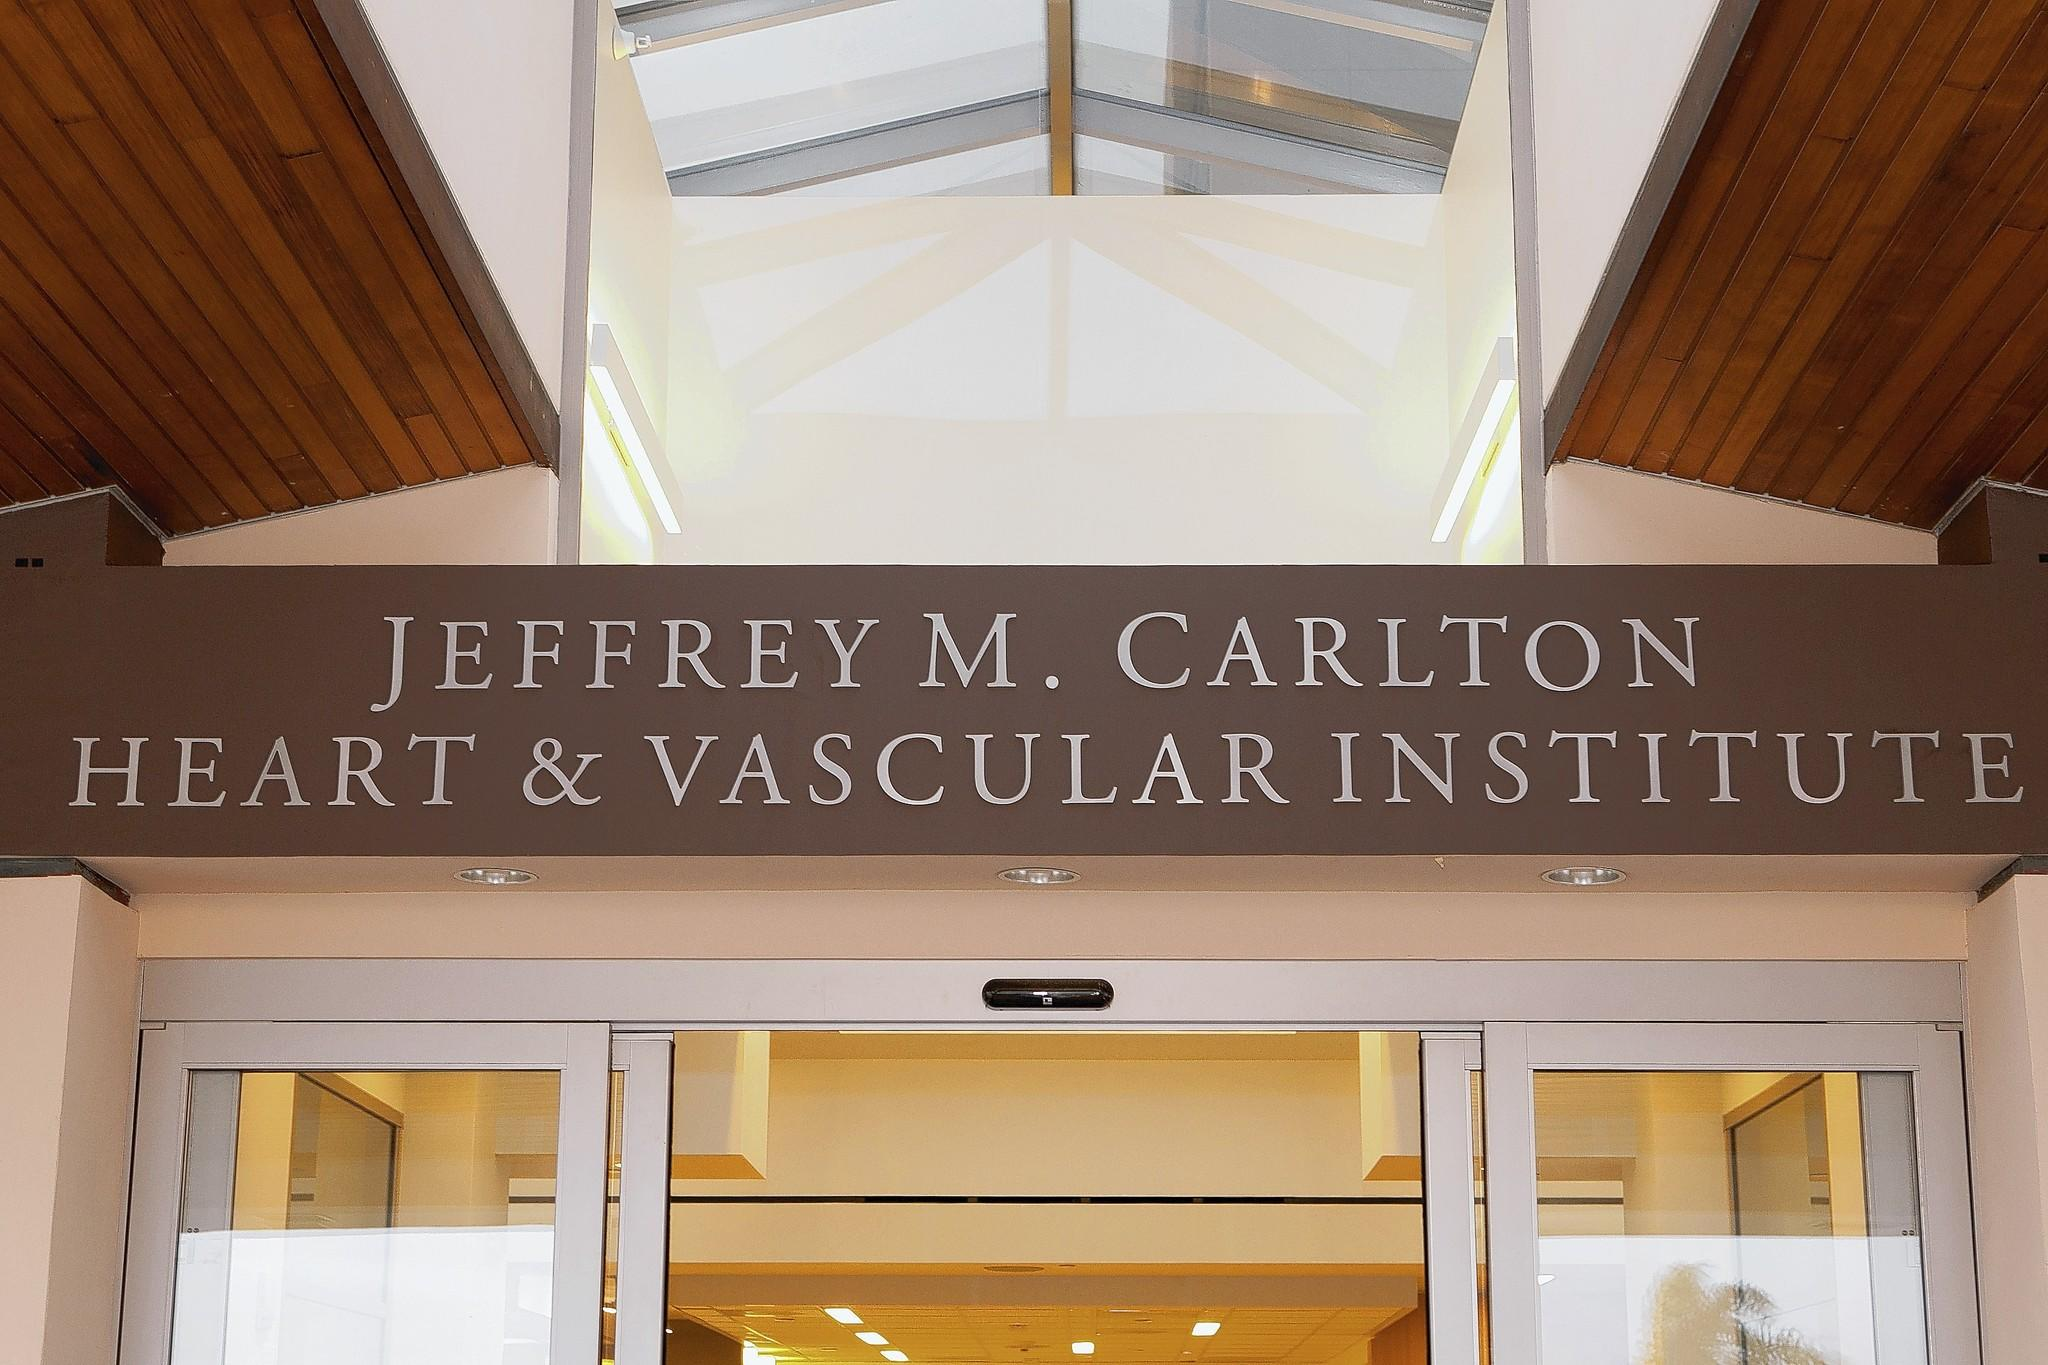 Hoag Hospital unveiled the Jeffrey M. Carlton Heart & Vascular Institute, re-named for the late donor who gave the largest gift to the hospital to date.